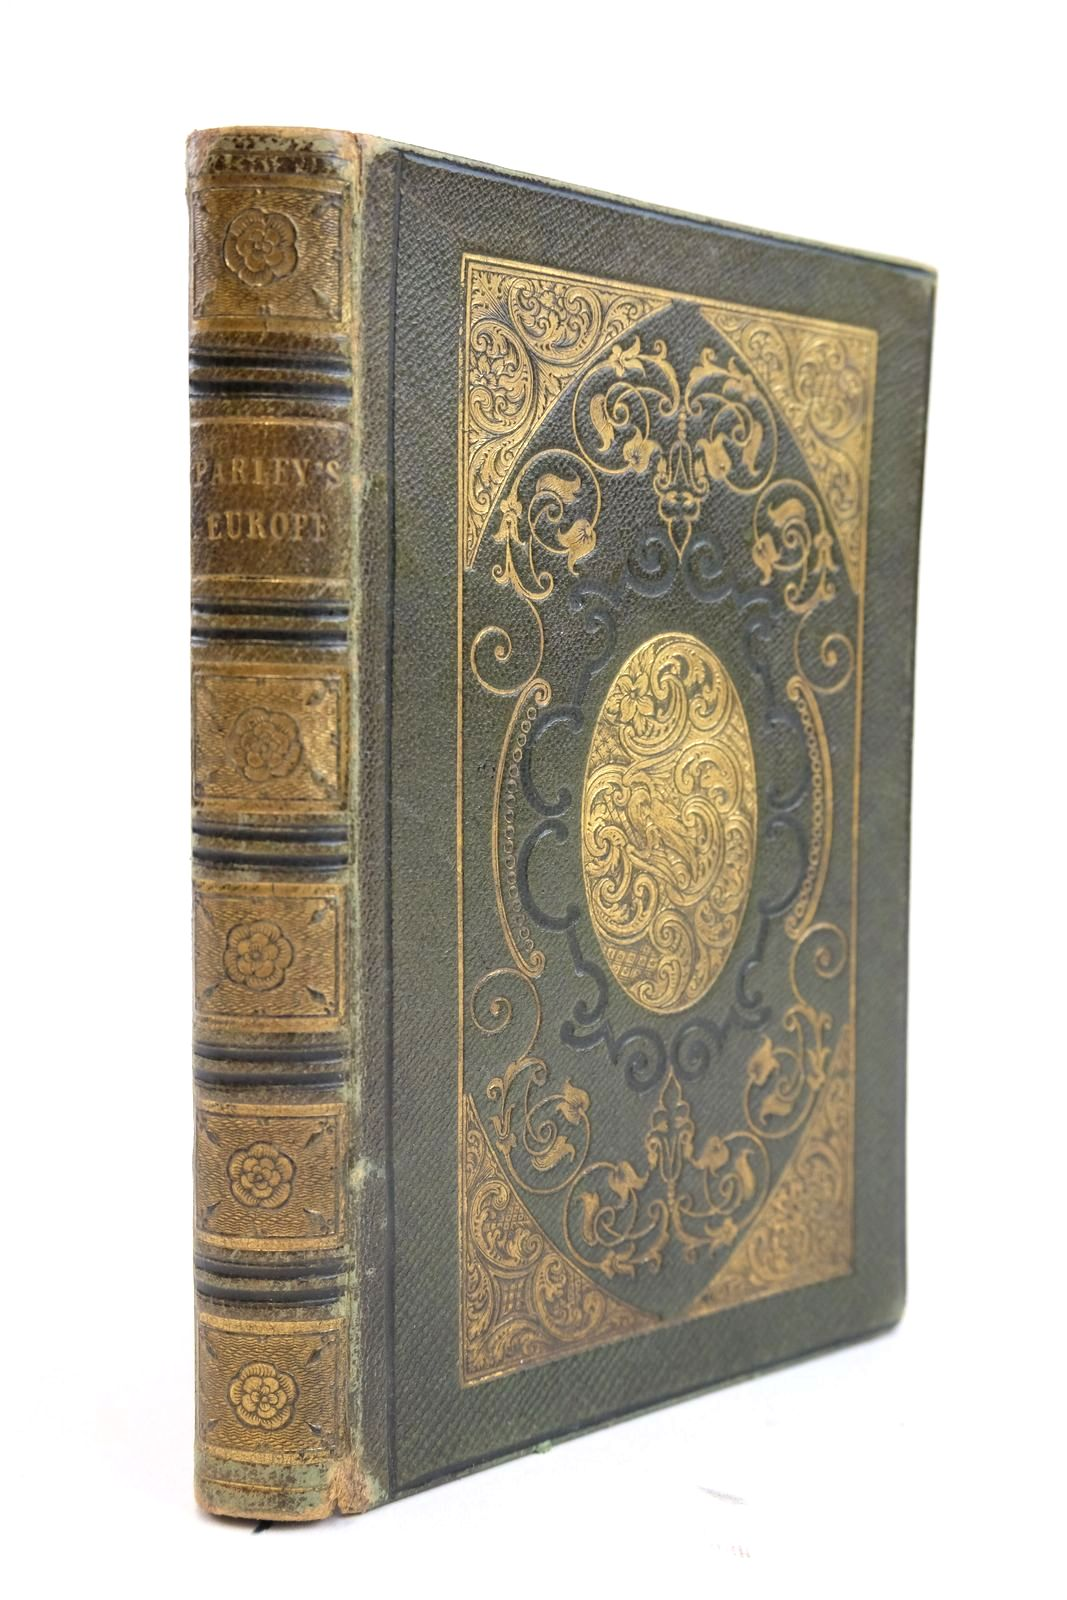 Photo of TALES ABOUT EUROPE written by Parley, Peter Wilson, T. published by Darton And Clark (STOCK CODE: 2134183)  for sale by Stella & Rose's Books